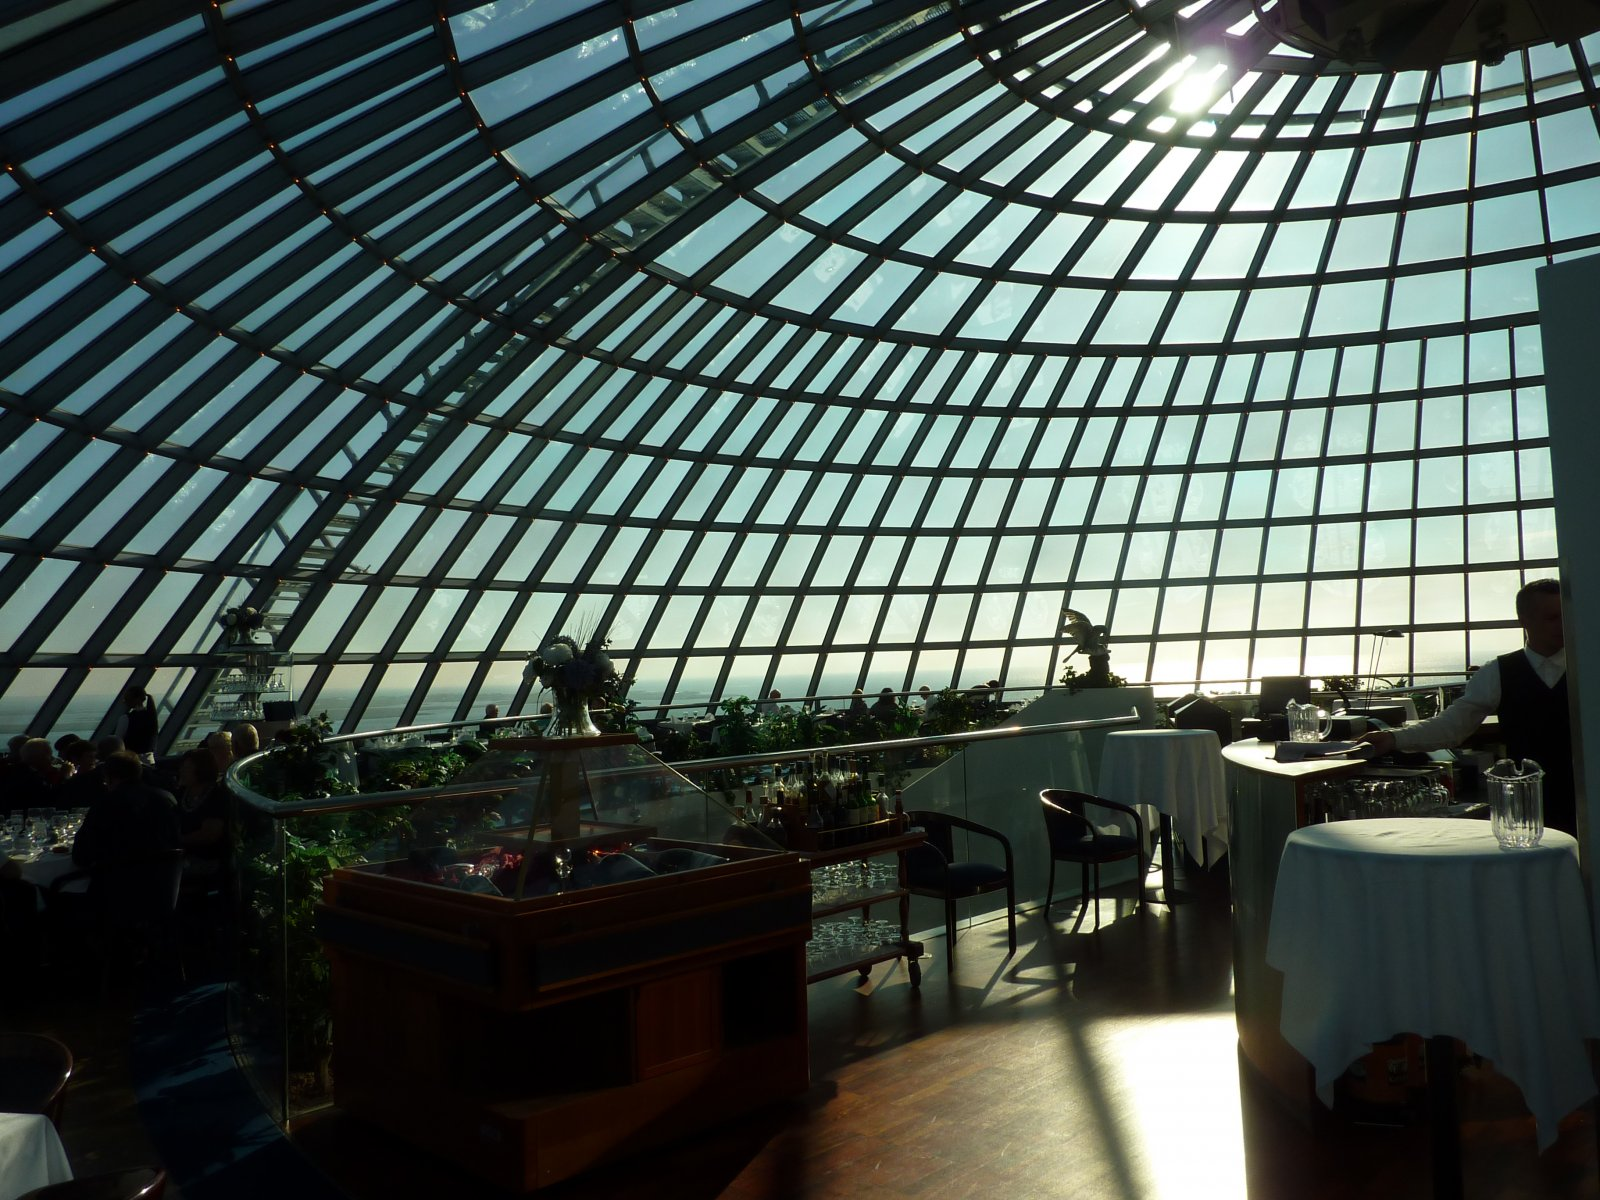 How to have dinner in a restaurant under the dome in Reykjavik